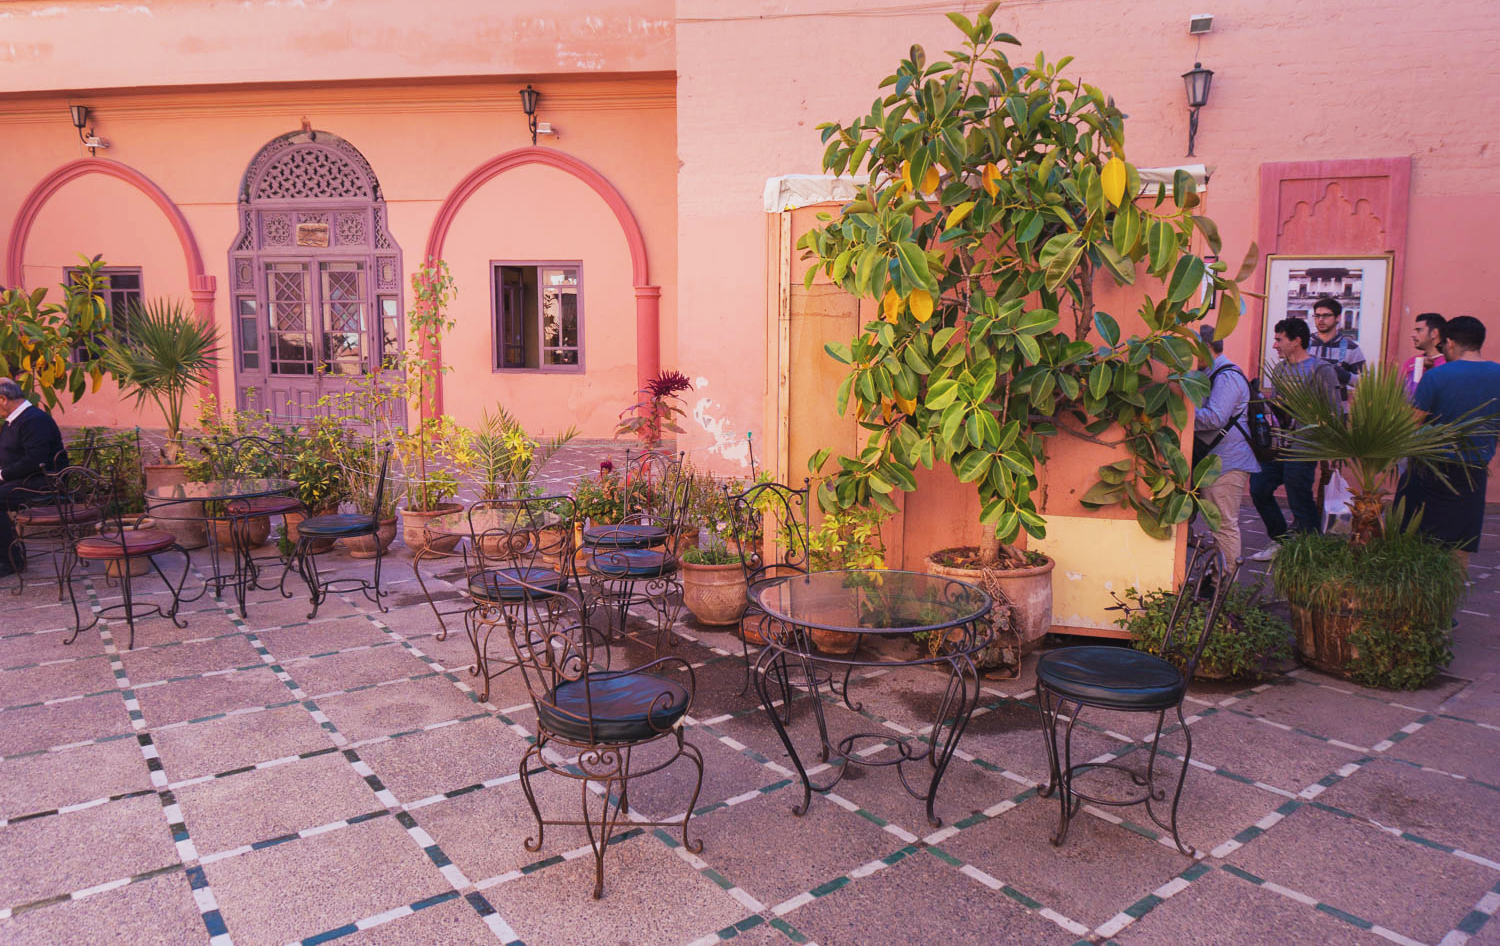 Marrakech_cafe_marrakech_museum-2